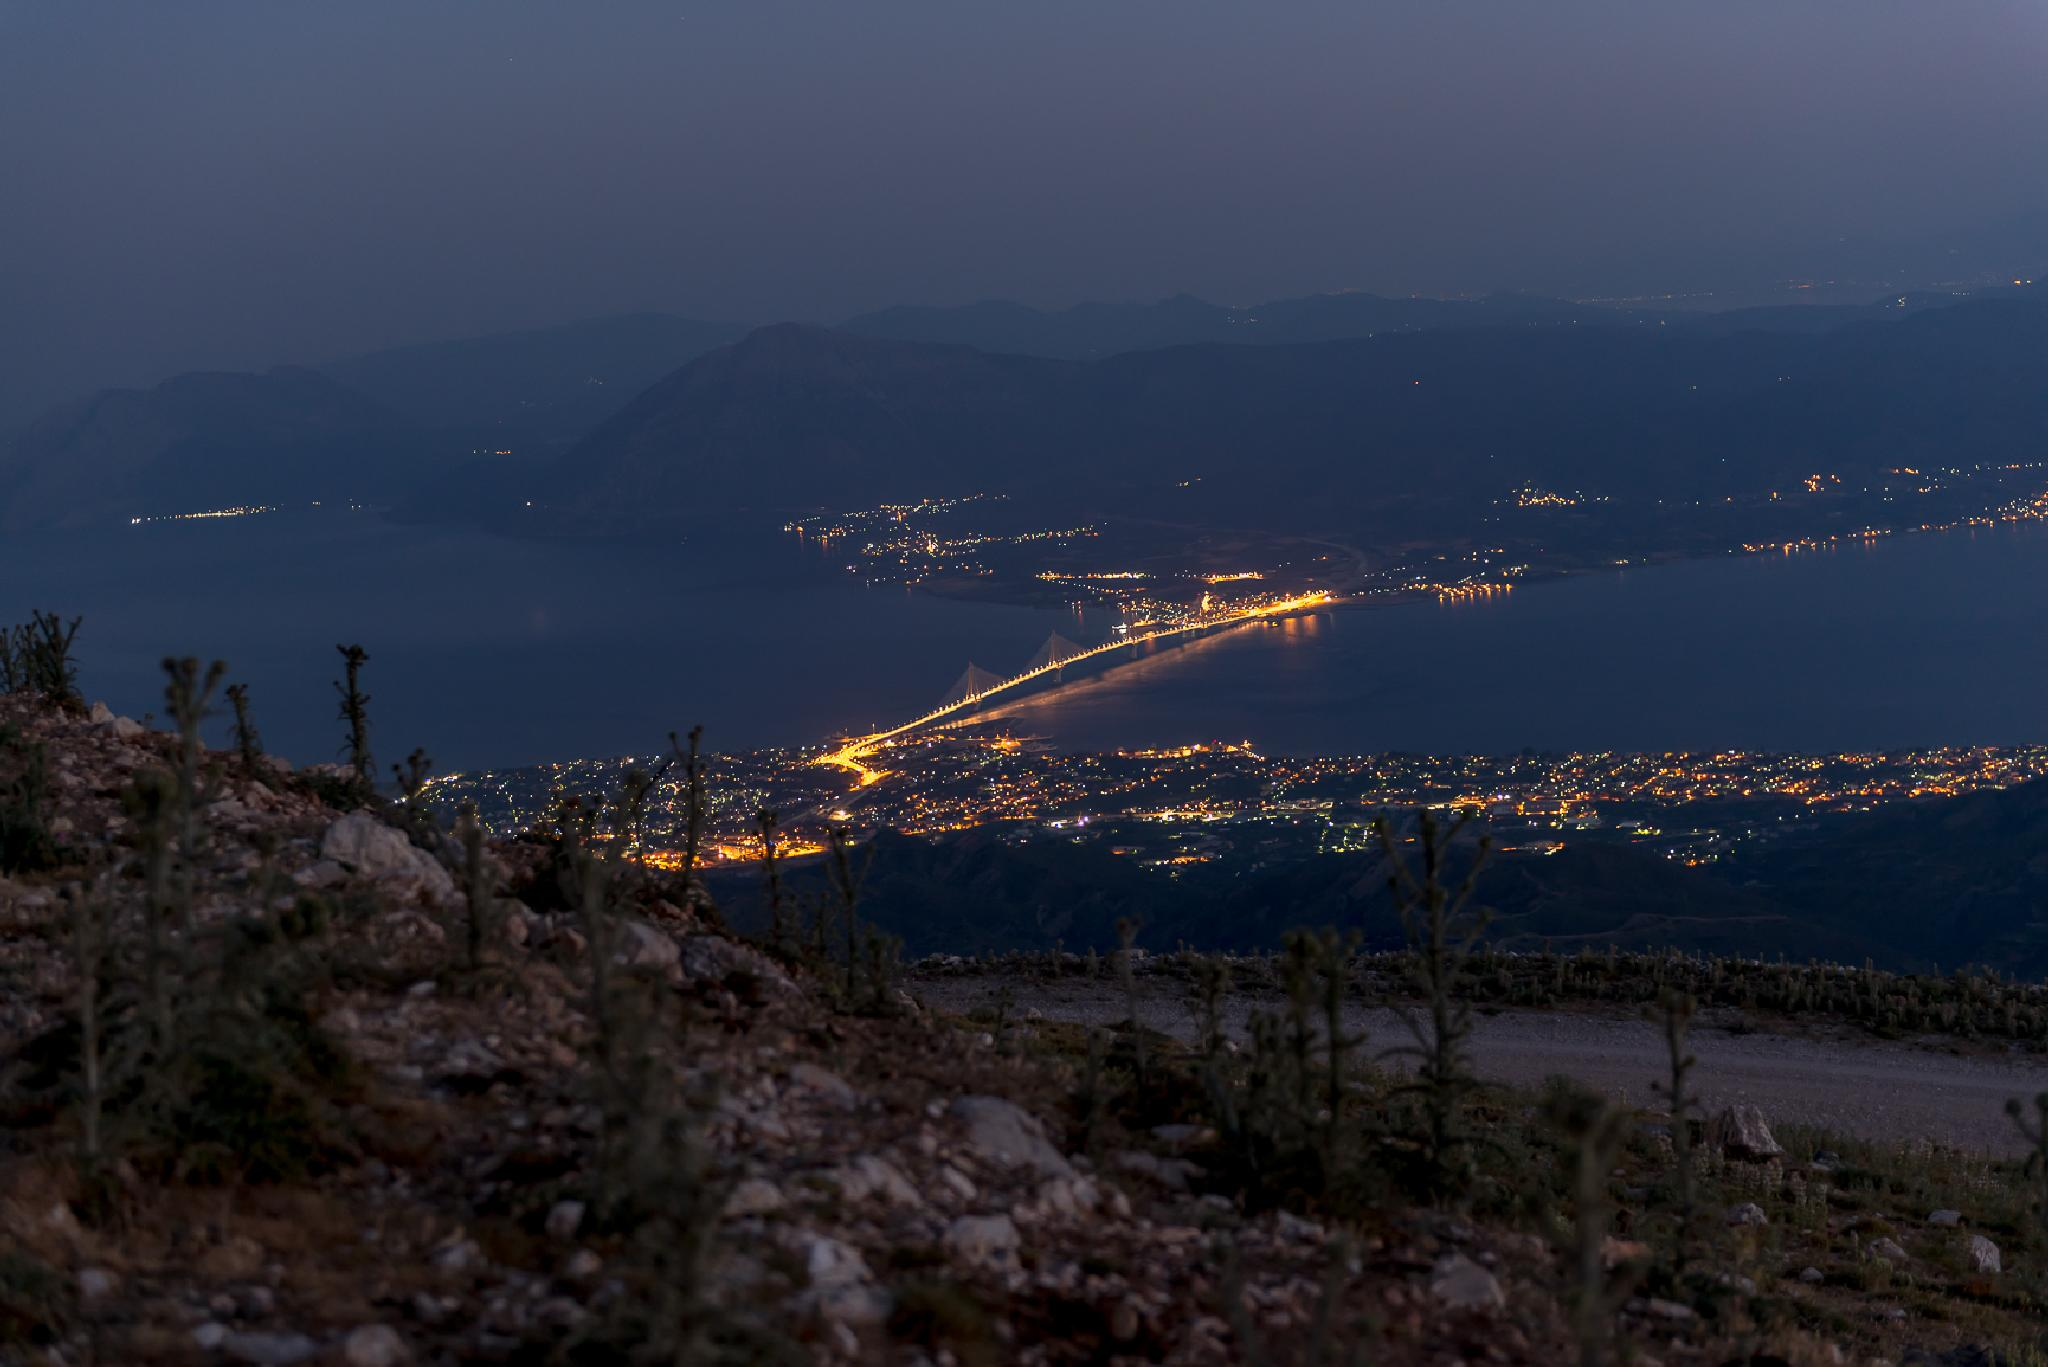 Night in Mountain by patramike